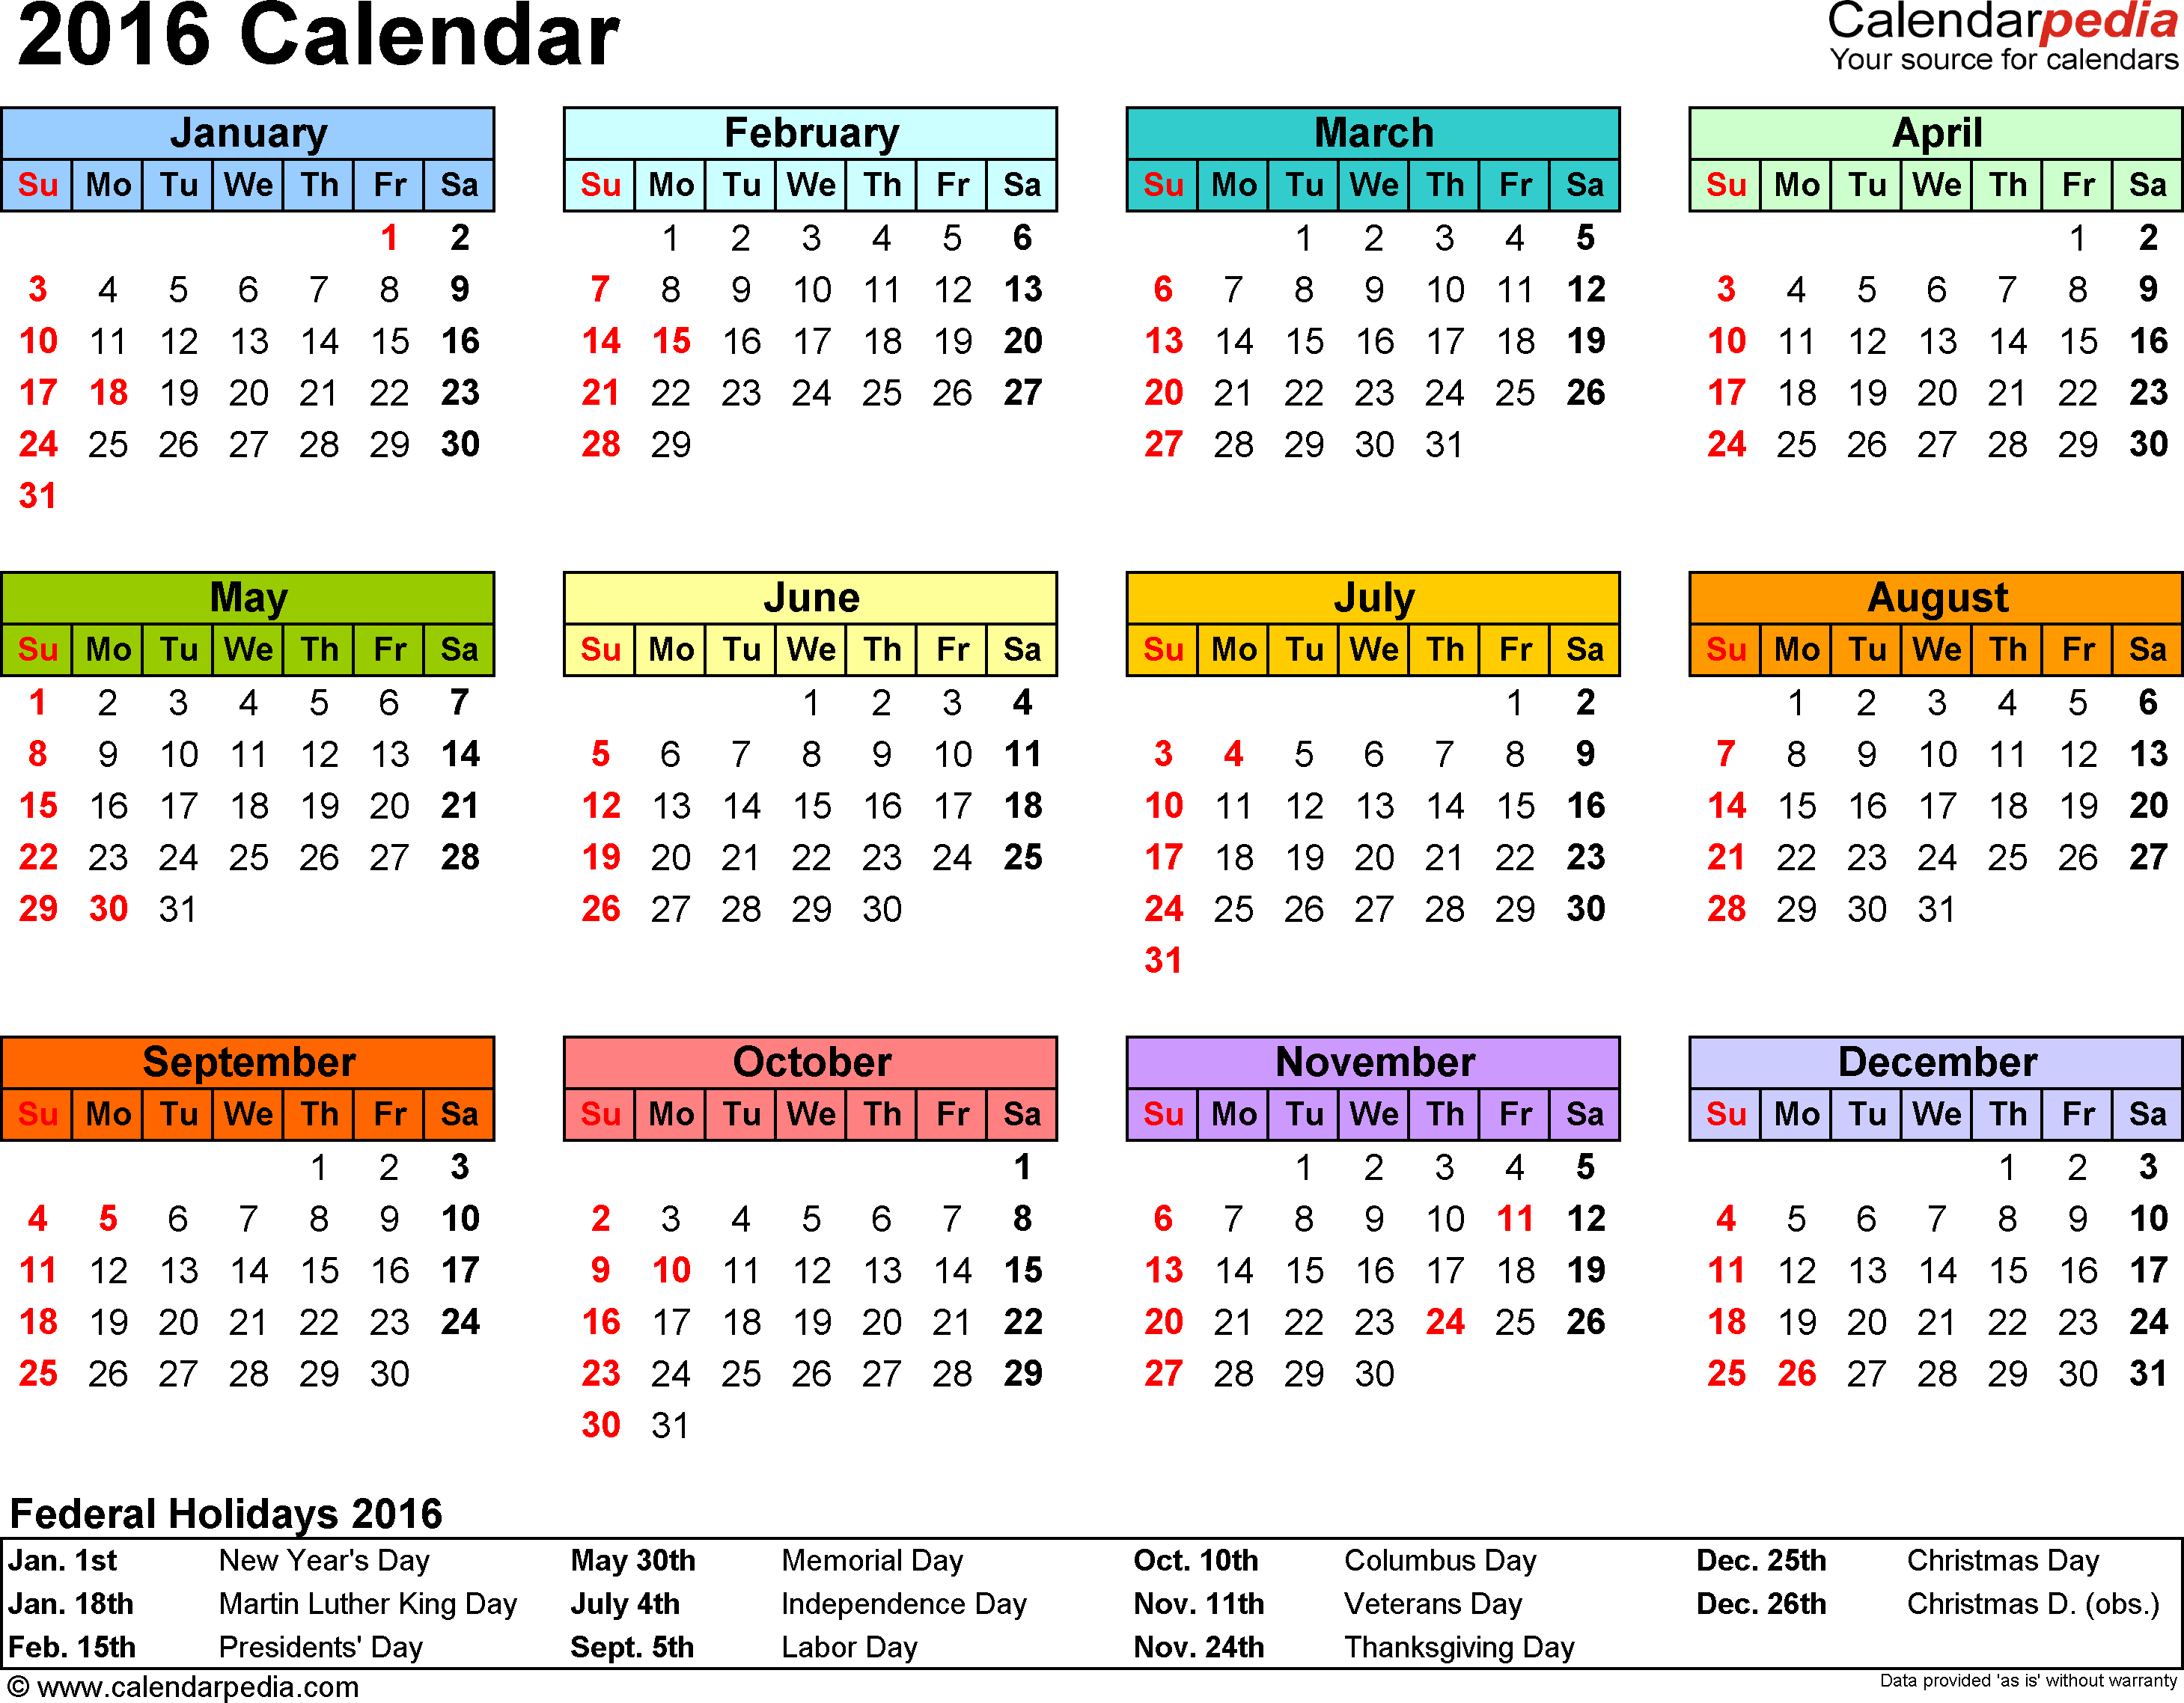 template 7 2016 calendar for excel year at a glance 1 page